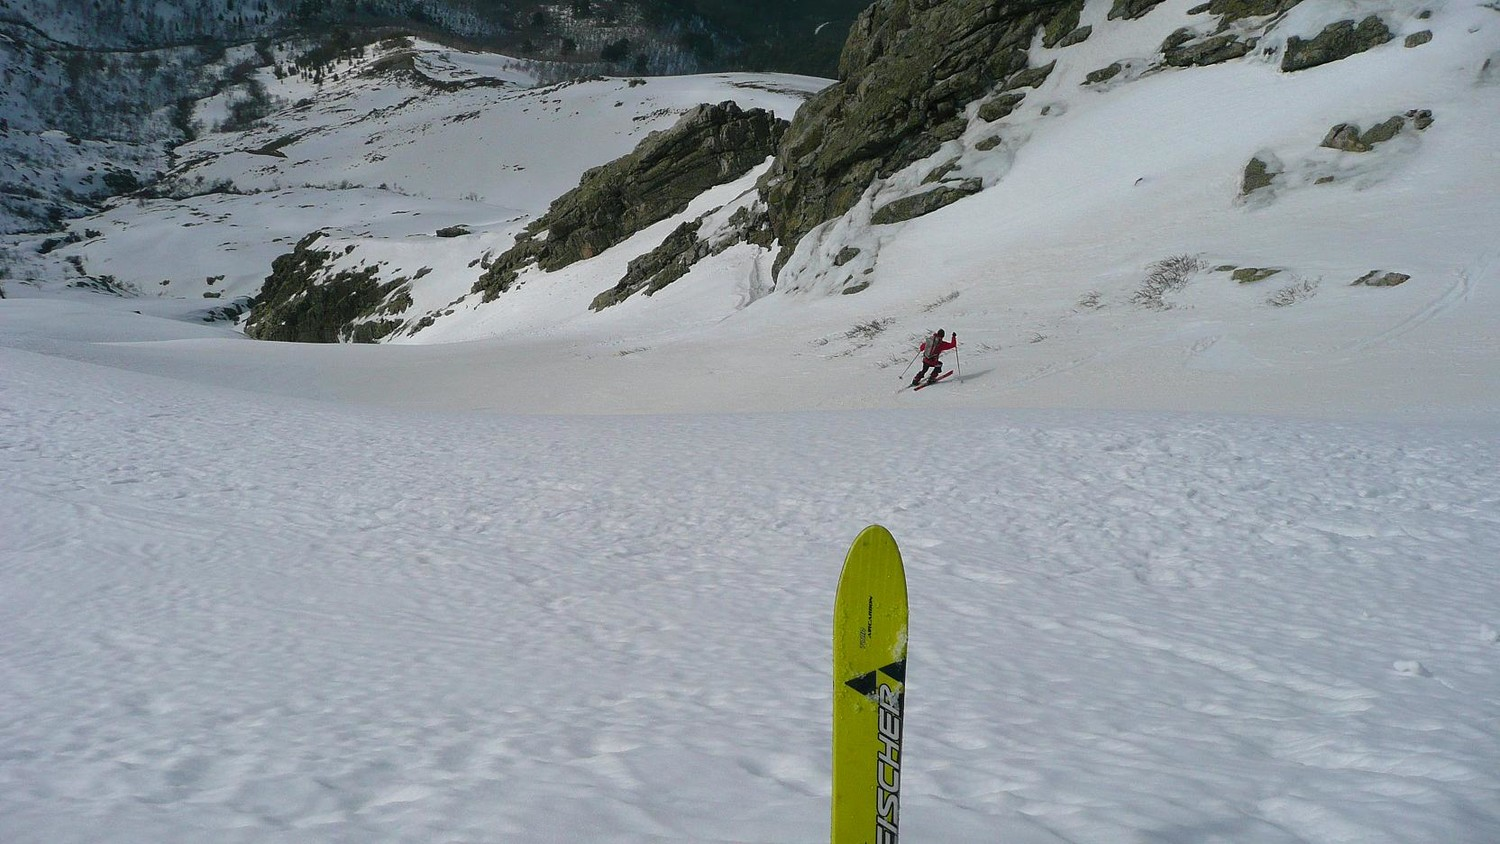 Mes skis vivants, à l'attaque du couloir NW du Tozzu